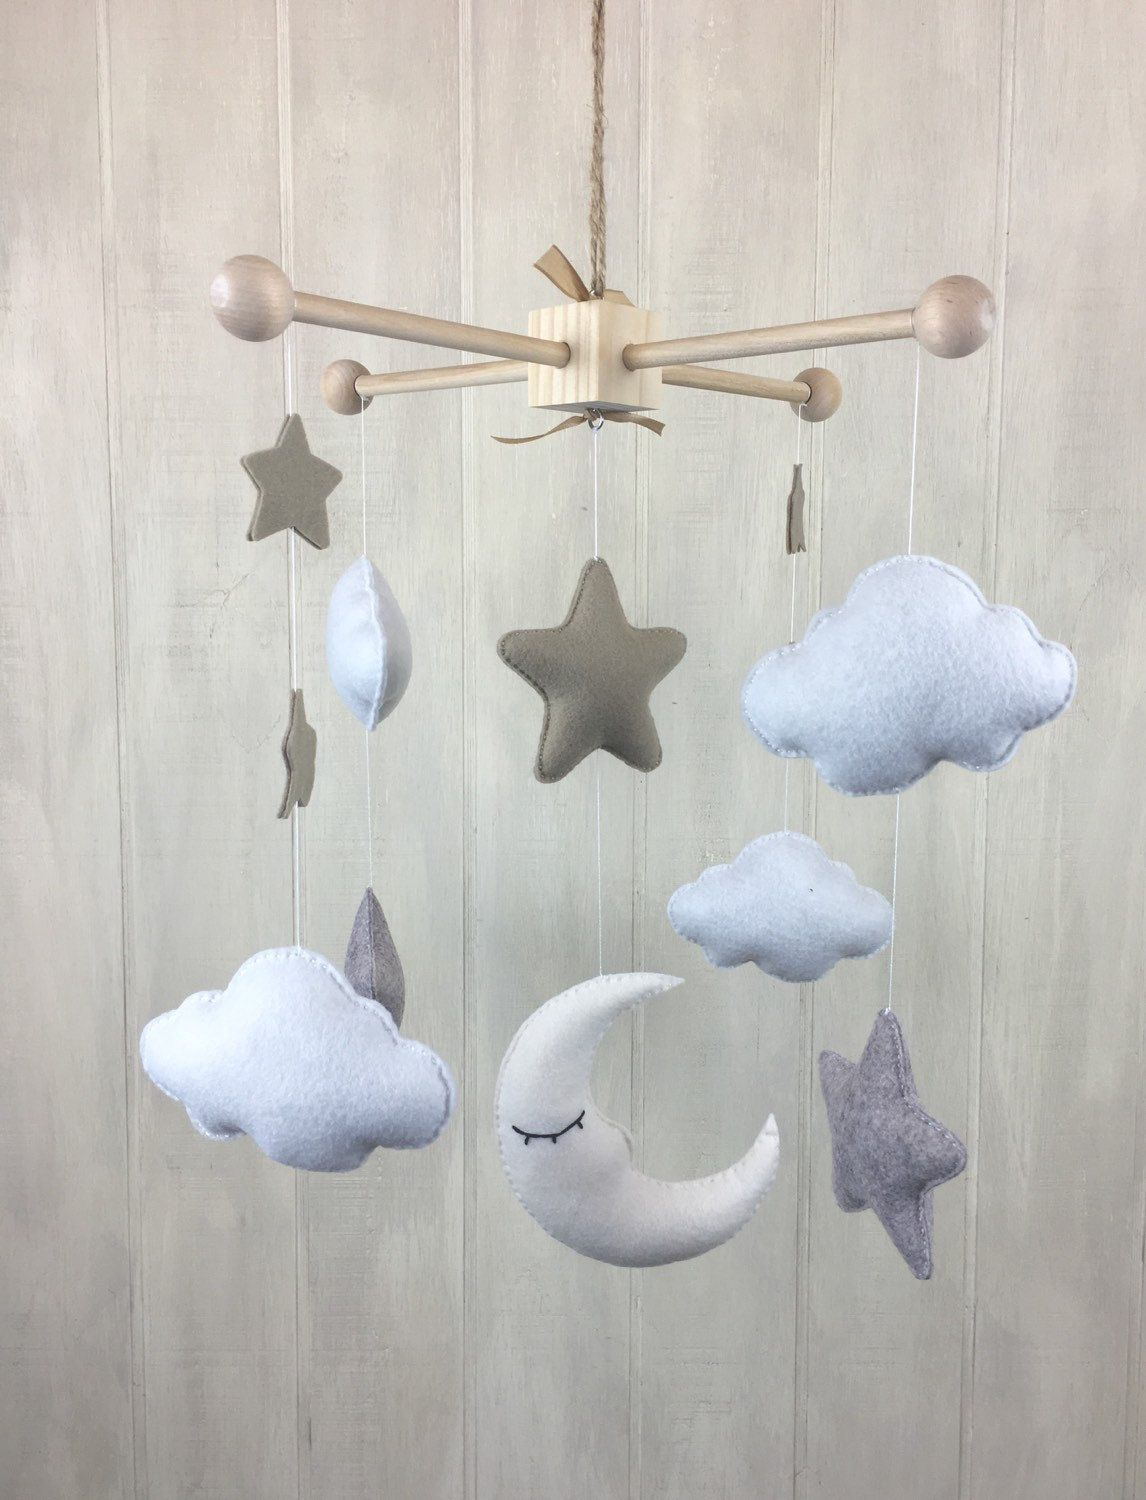 7188a734b7af7 Baby mobile - moon star and cloud mobile - baby crib mobile ...